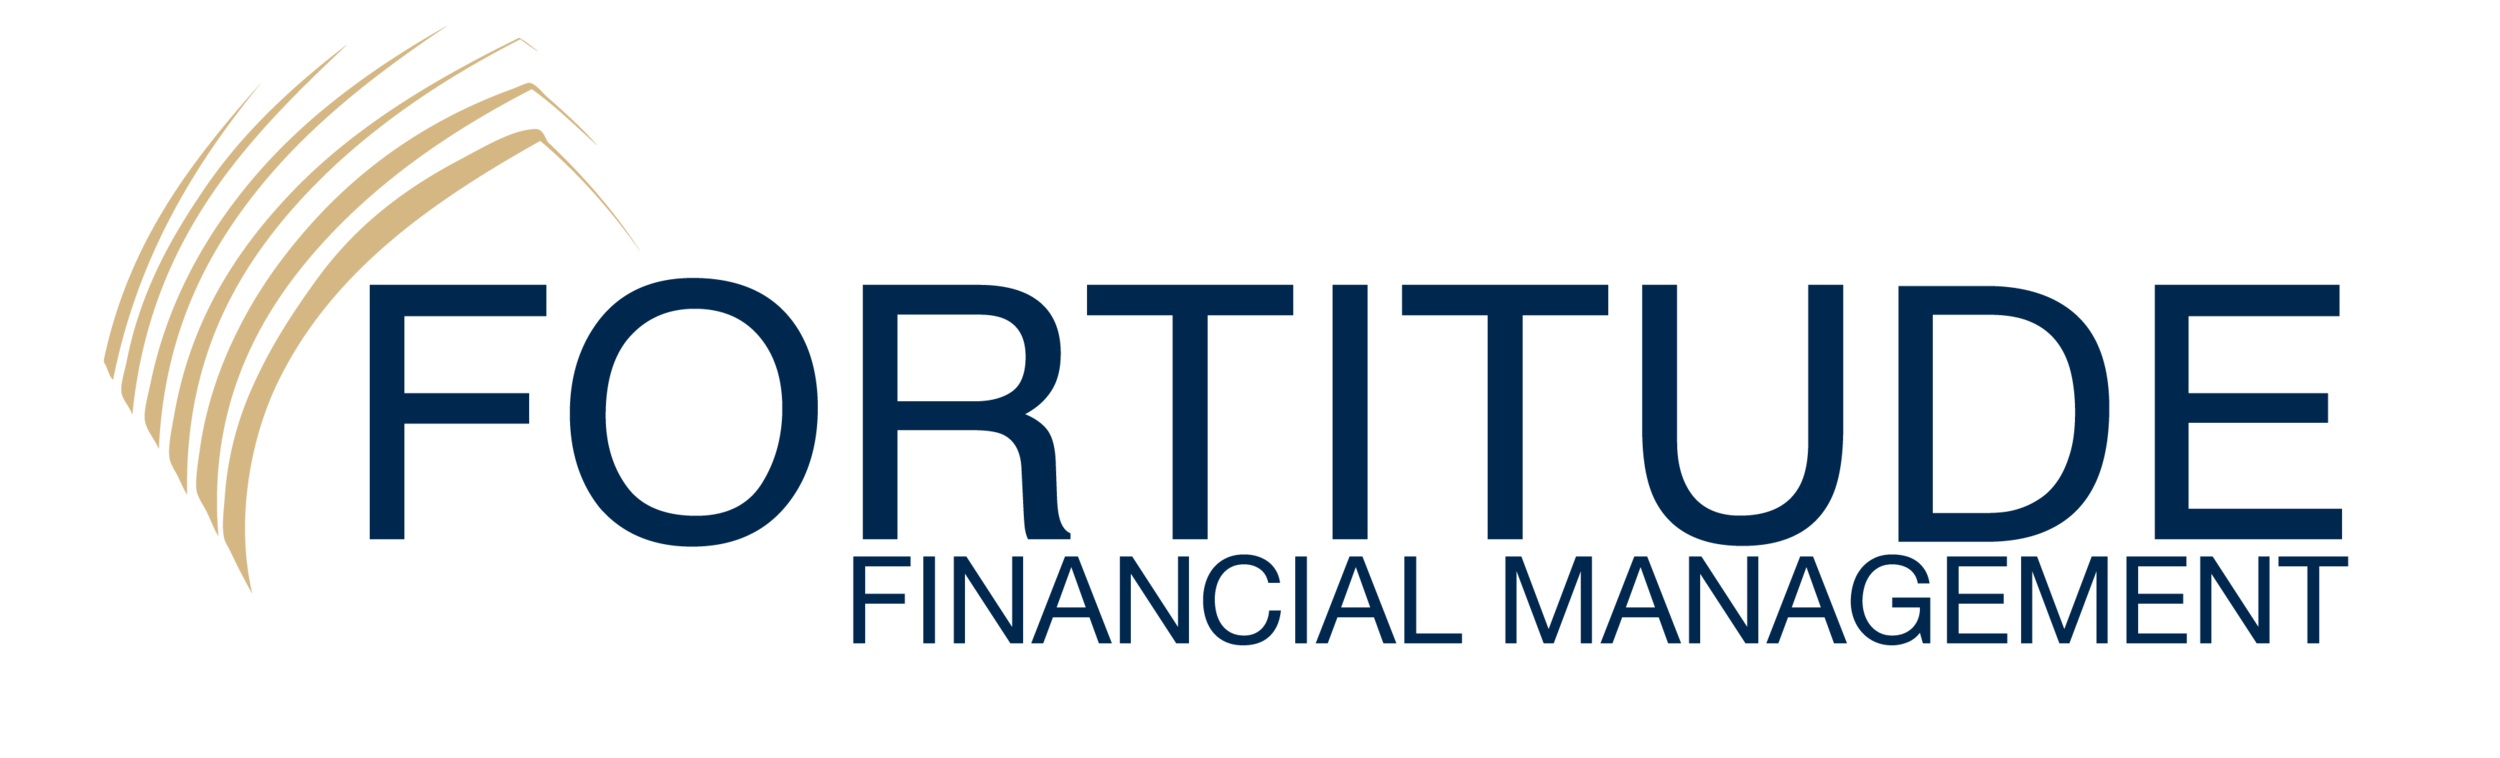 fortitude financial management-01-01-01.png